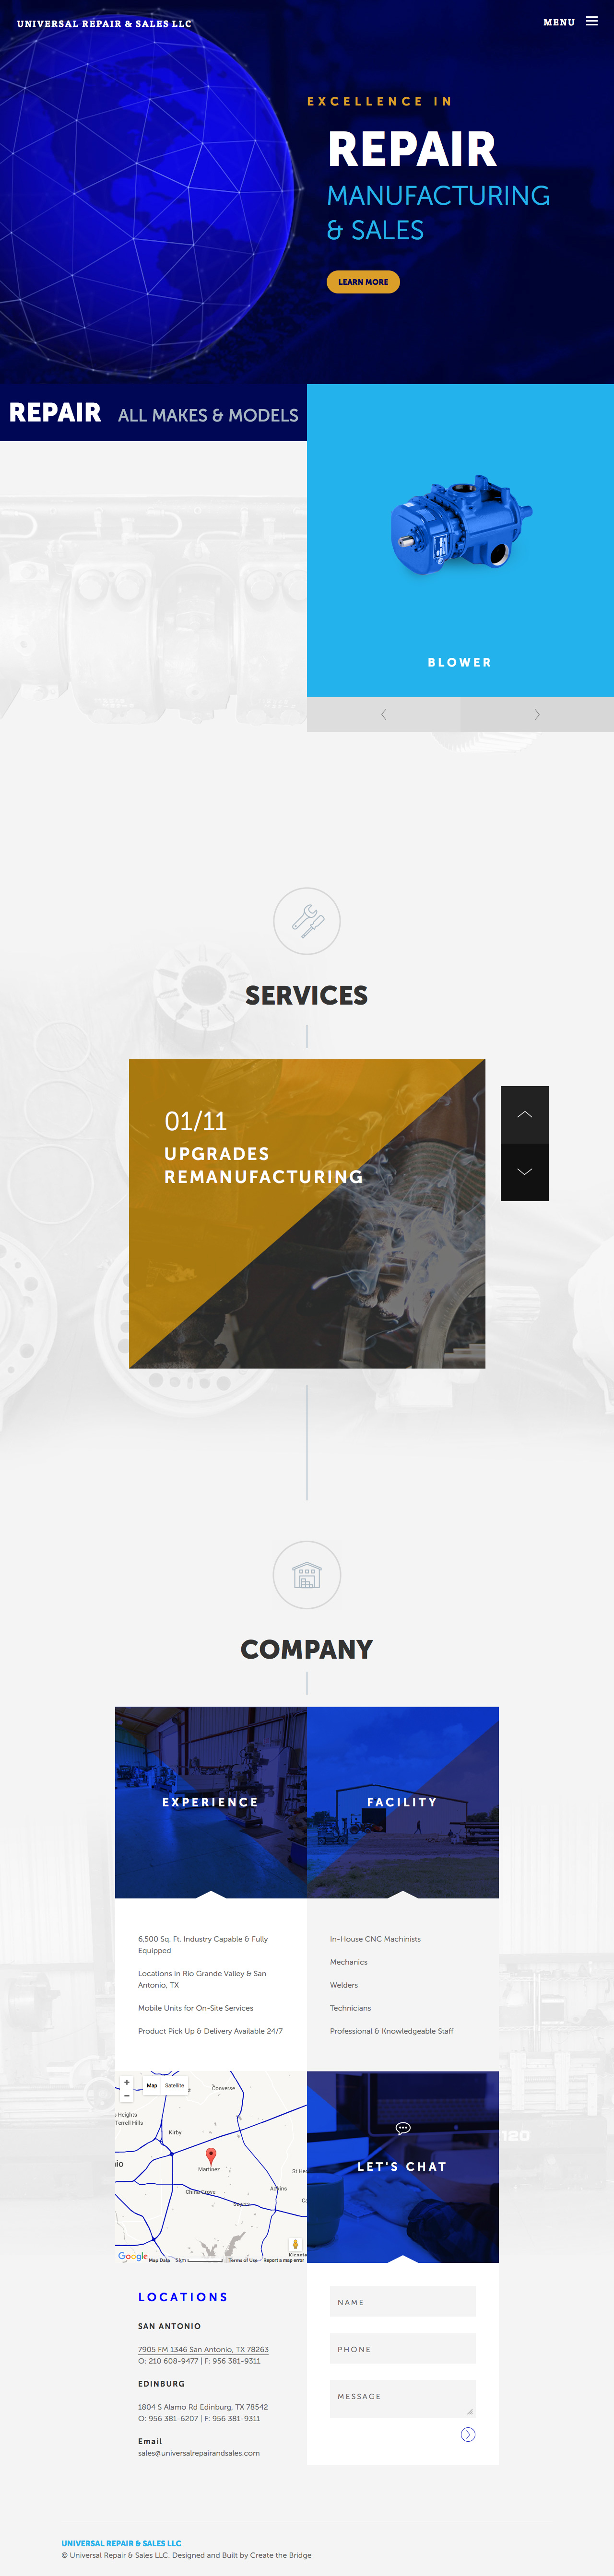 Universal Repair & Sales LLC Website Screenshot